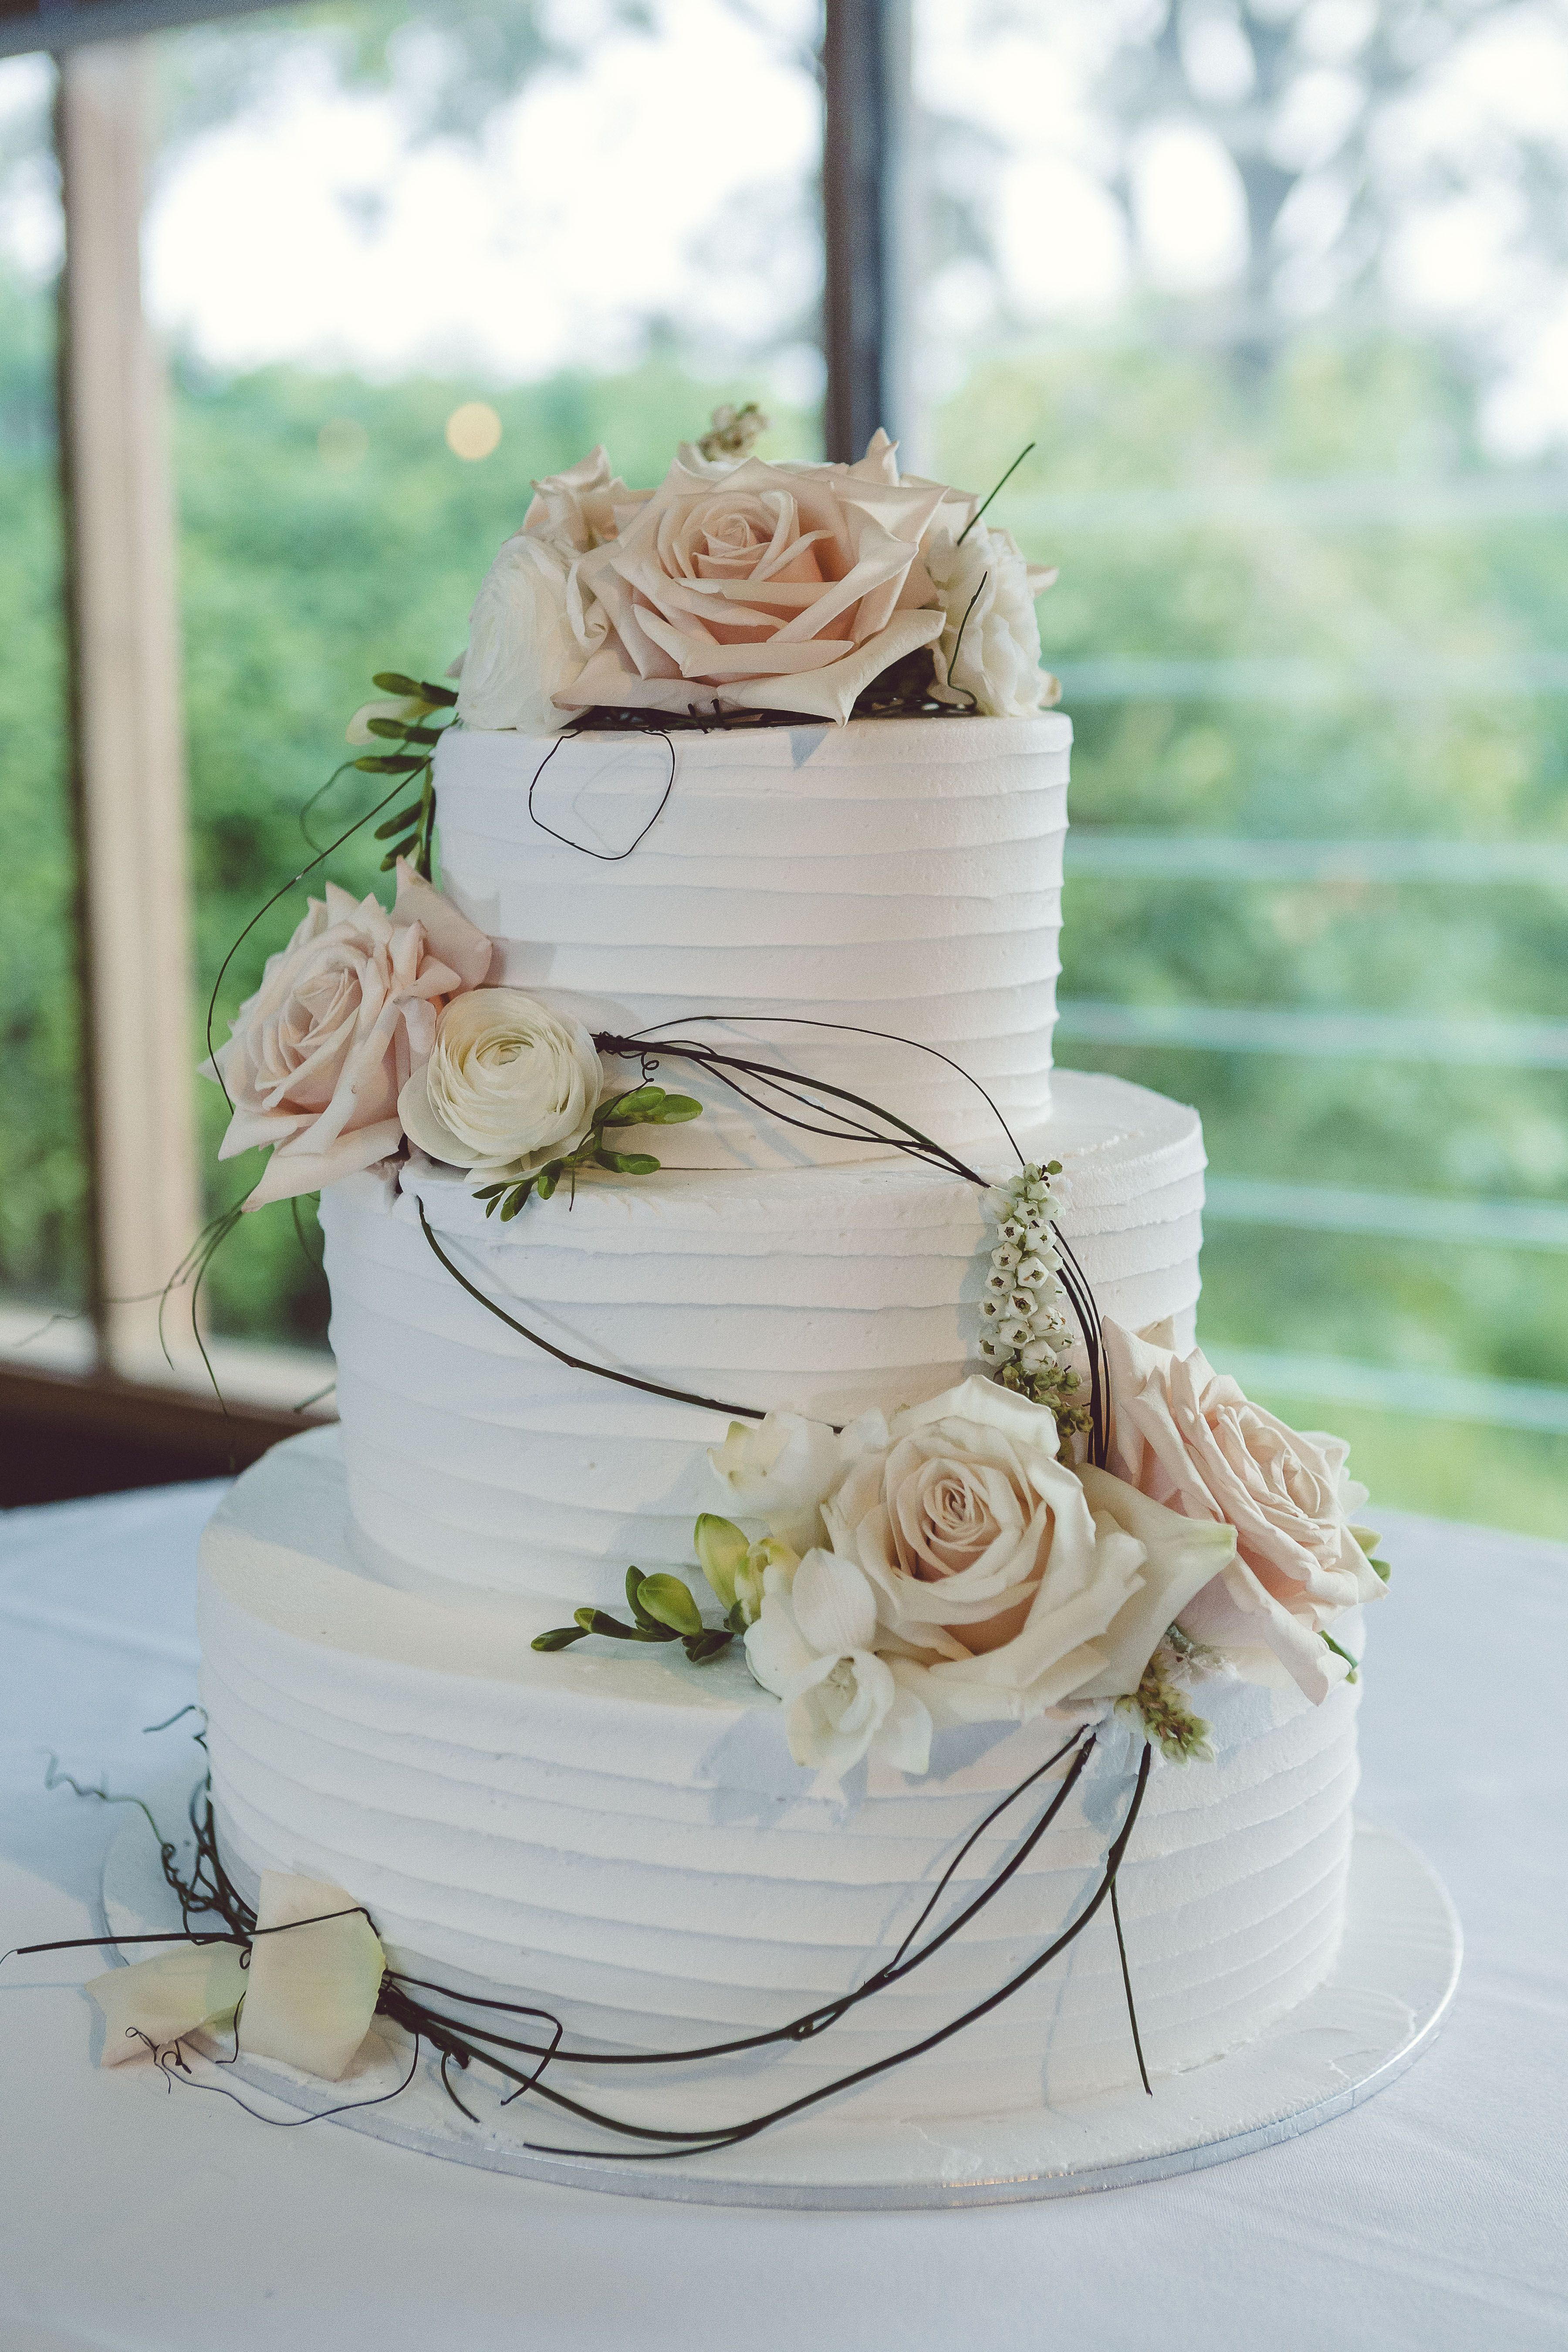 Wedding Cake 3 Tier White Icing Peach And White Flowers Vine